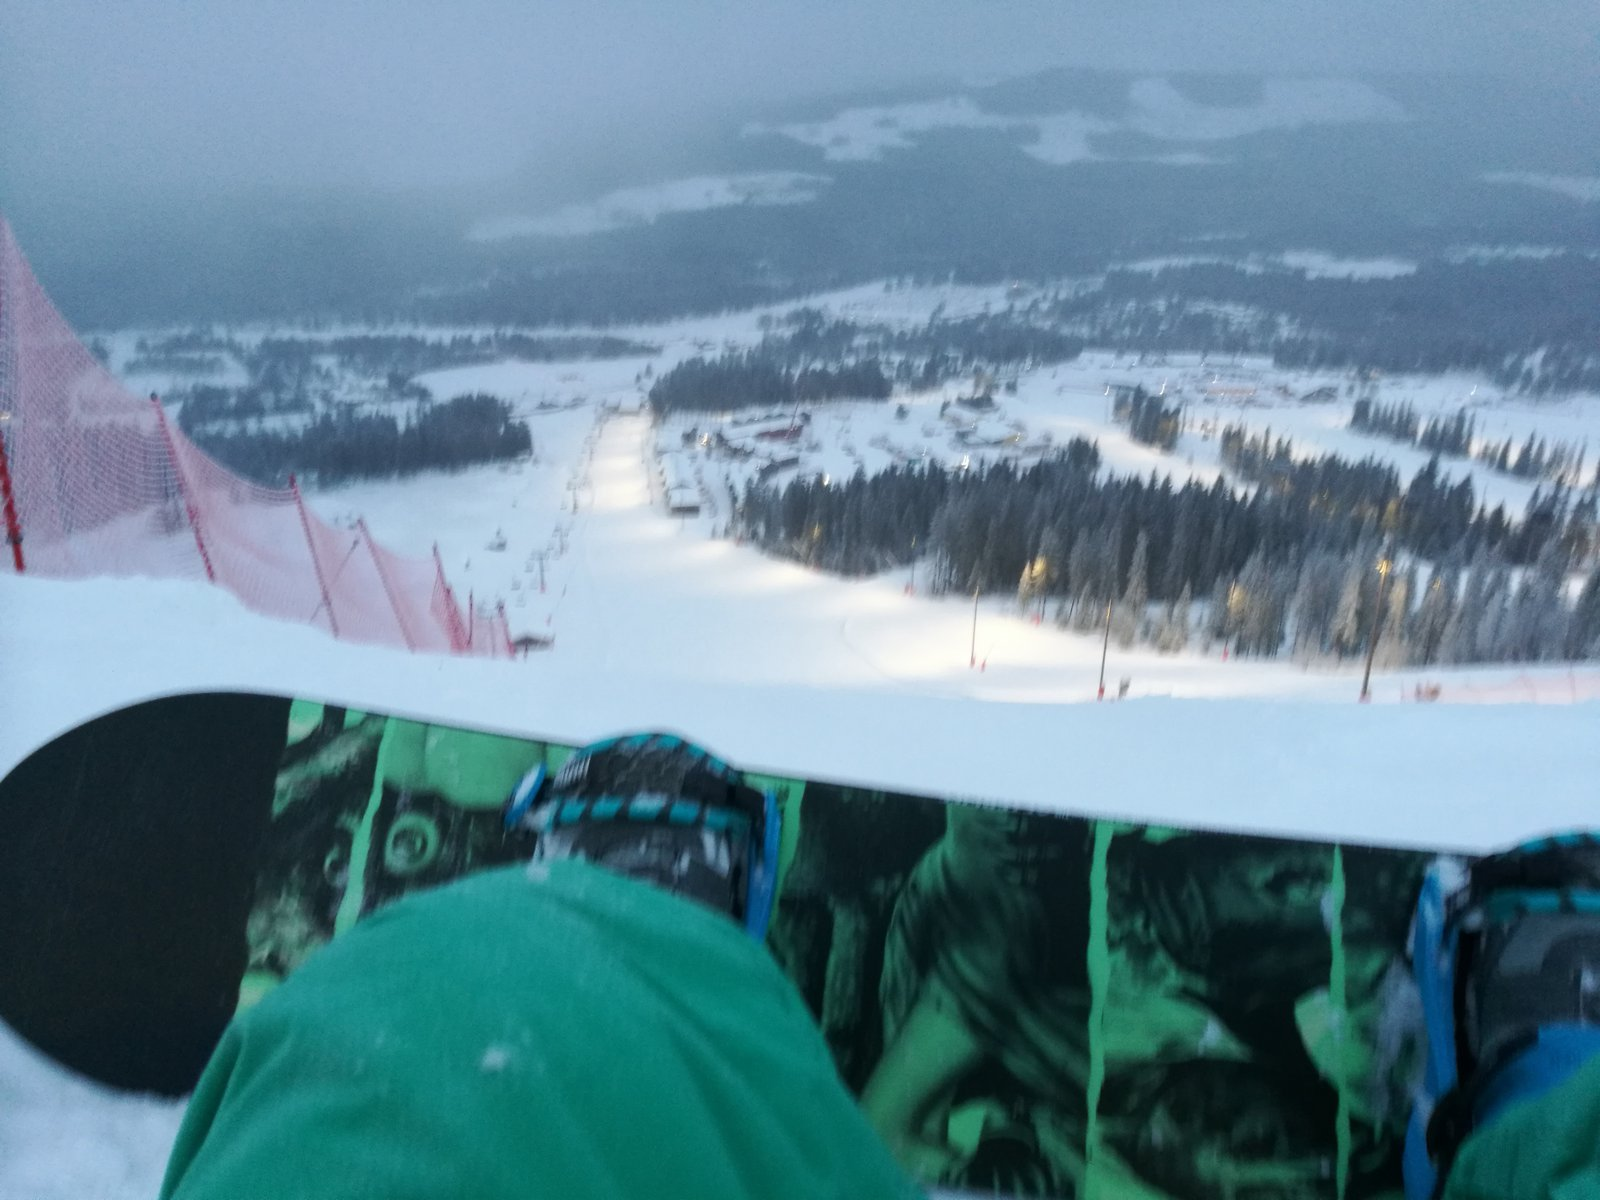 Snowing and great conditions yestetday 😀